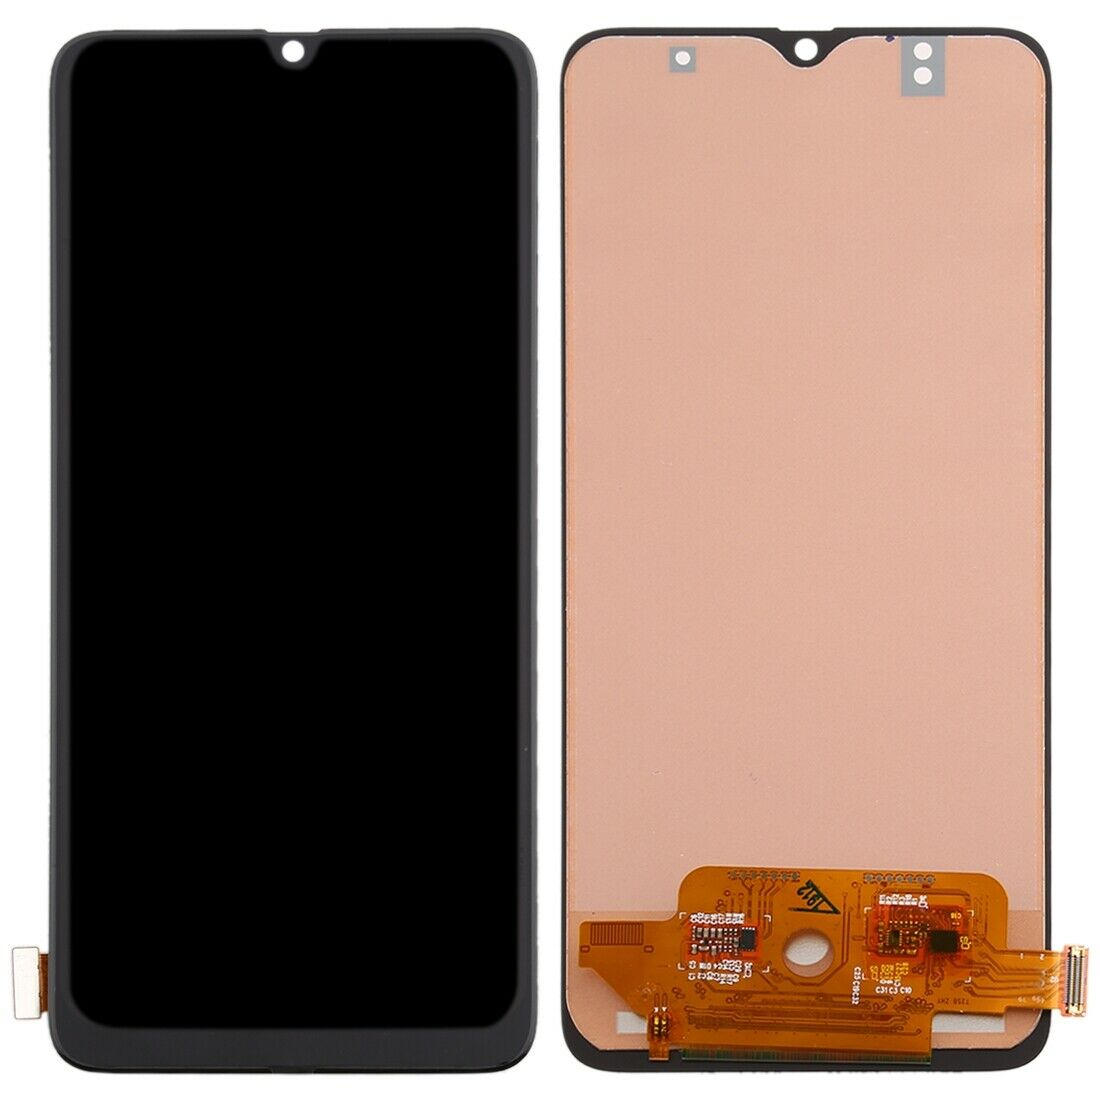 Touch Screen Display LCD per Samsung Galaxy A70 SM-A705 SM-A705F +kit smontaggio biadesivo e colla b7000